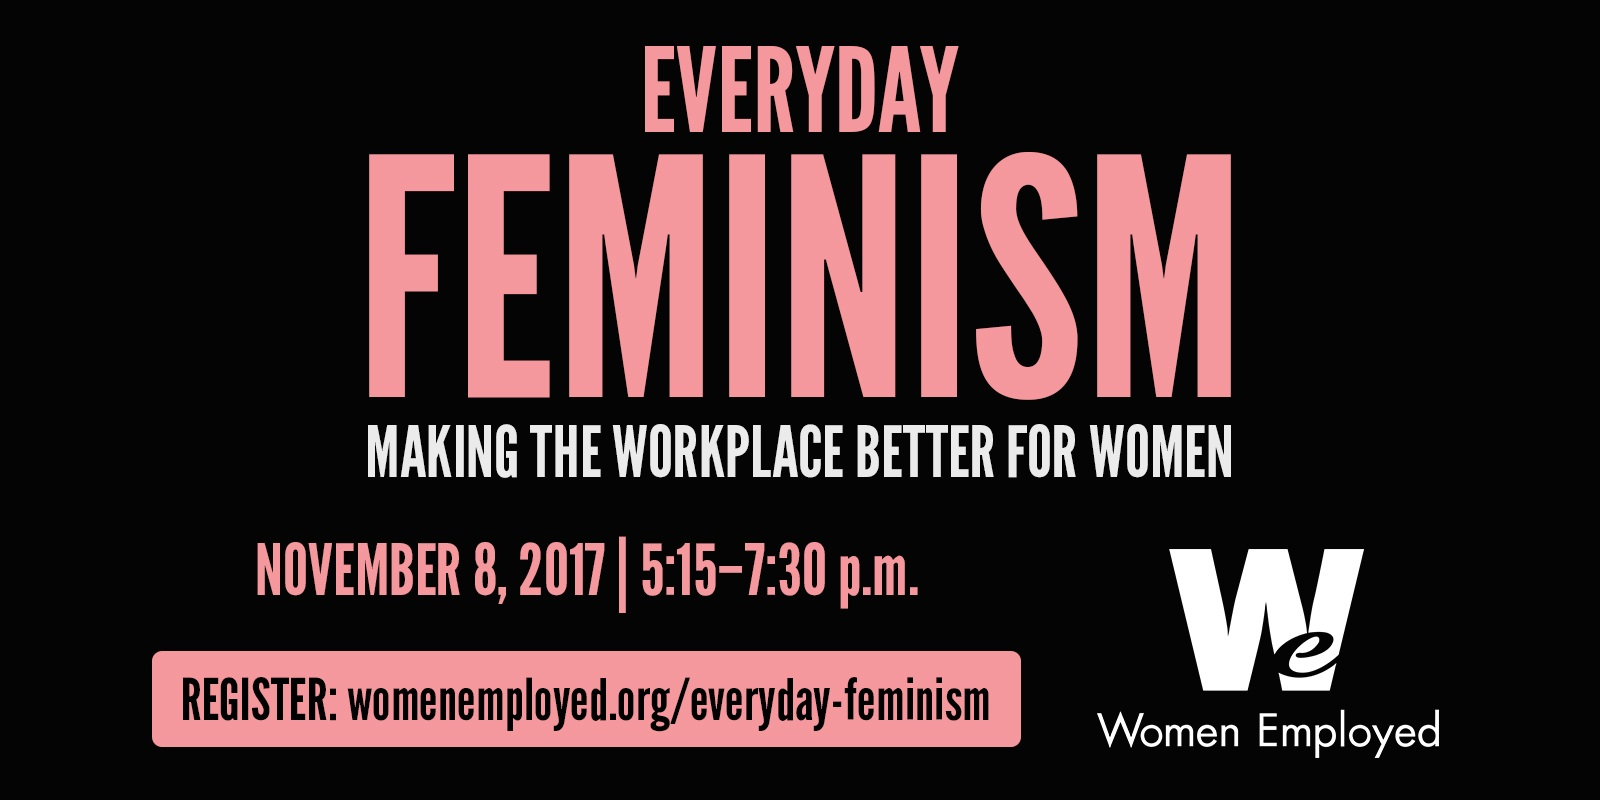 Everyday Feminism: Making the Workplace Better for Women